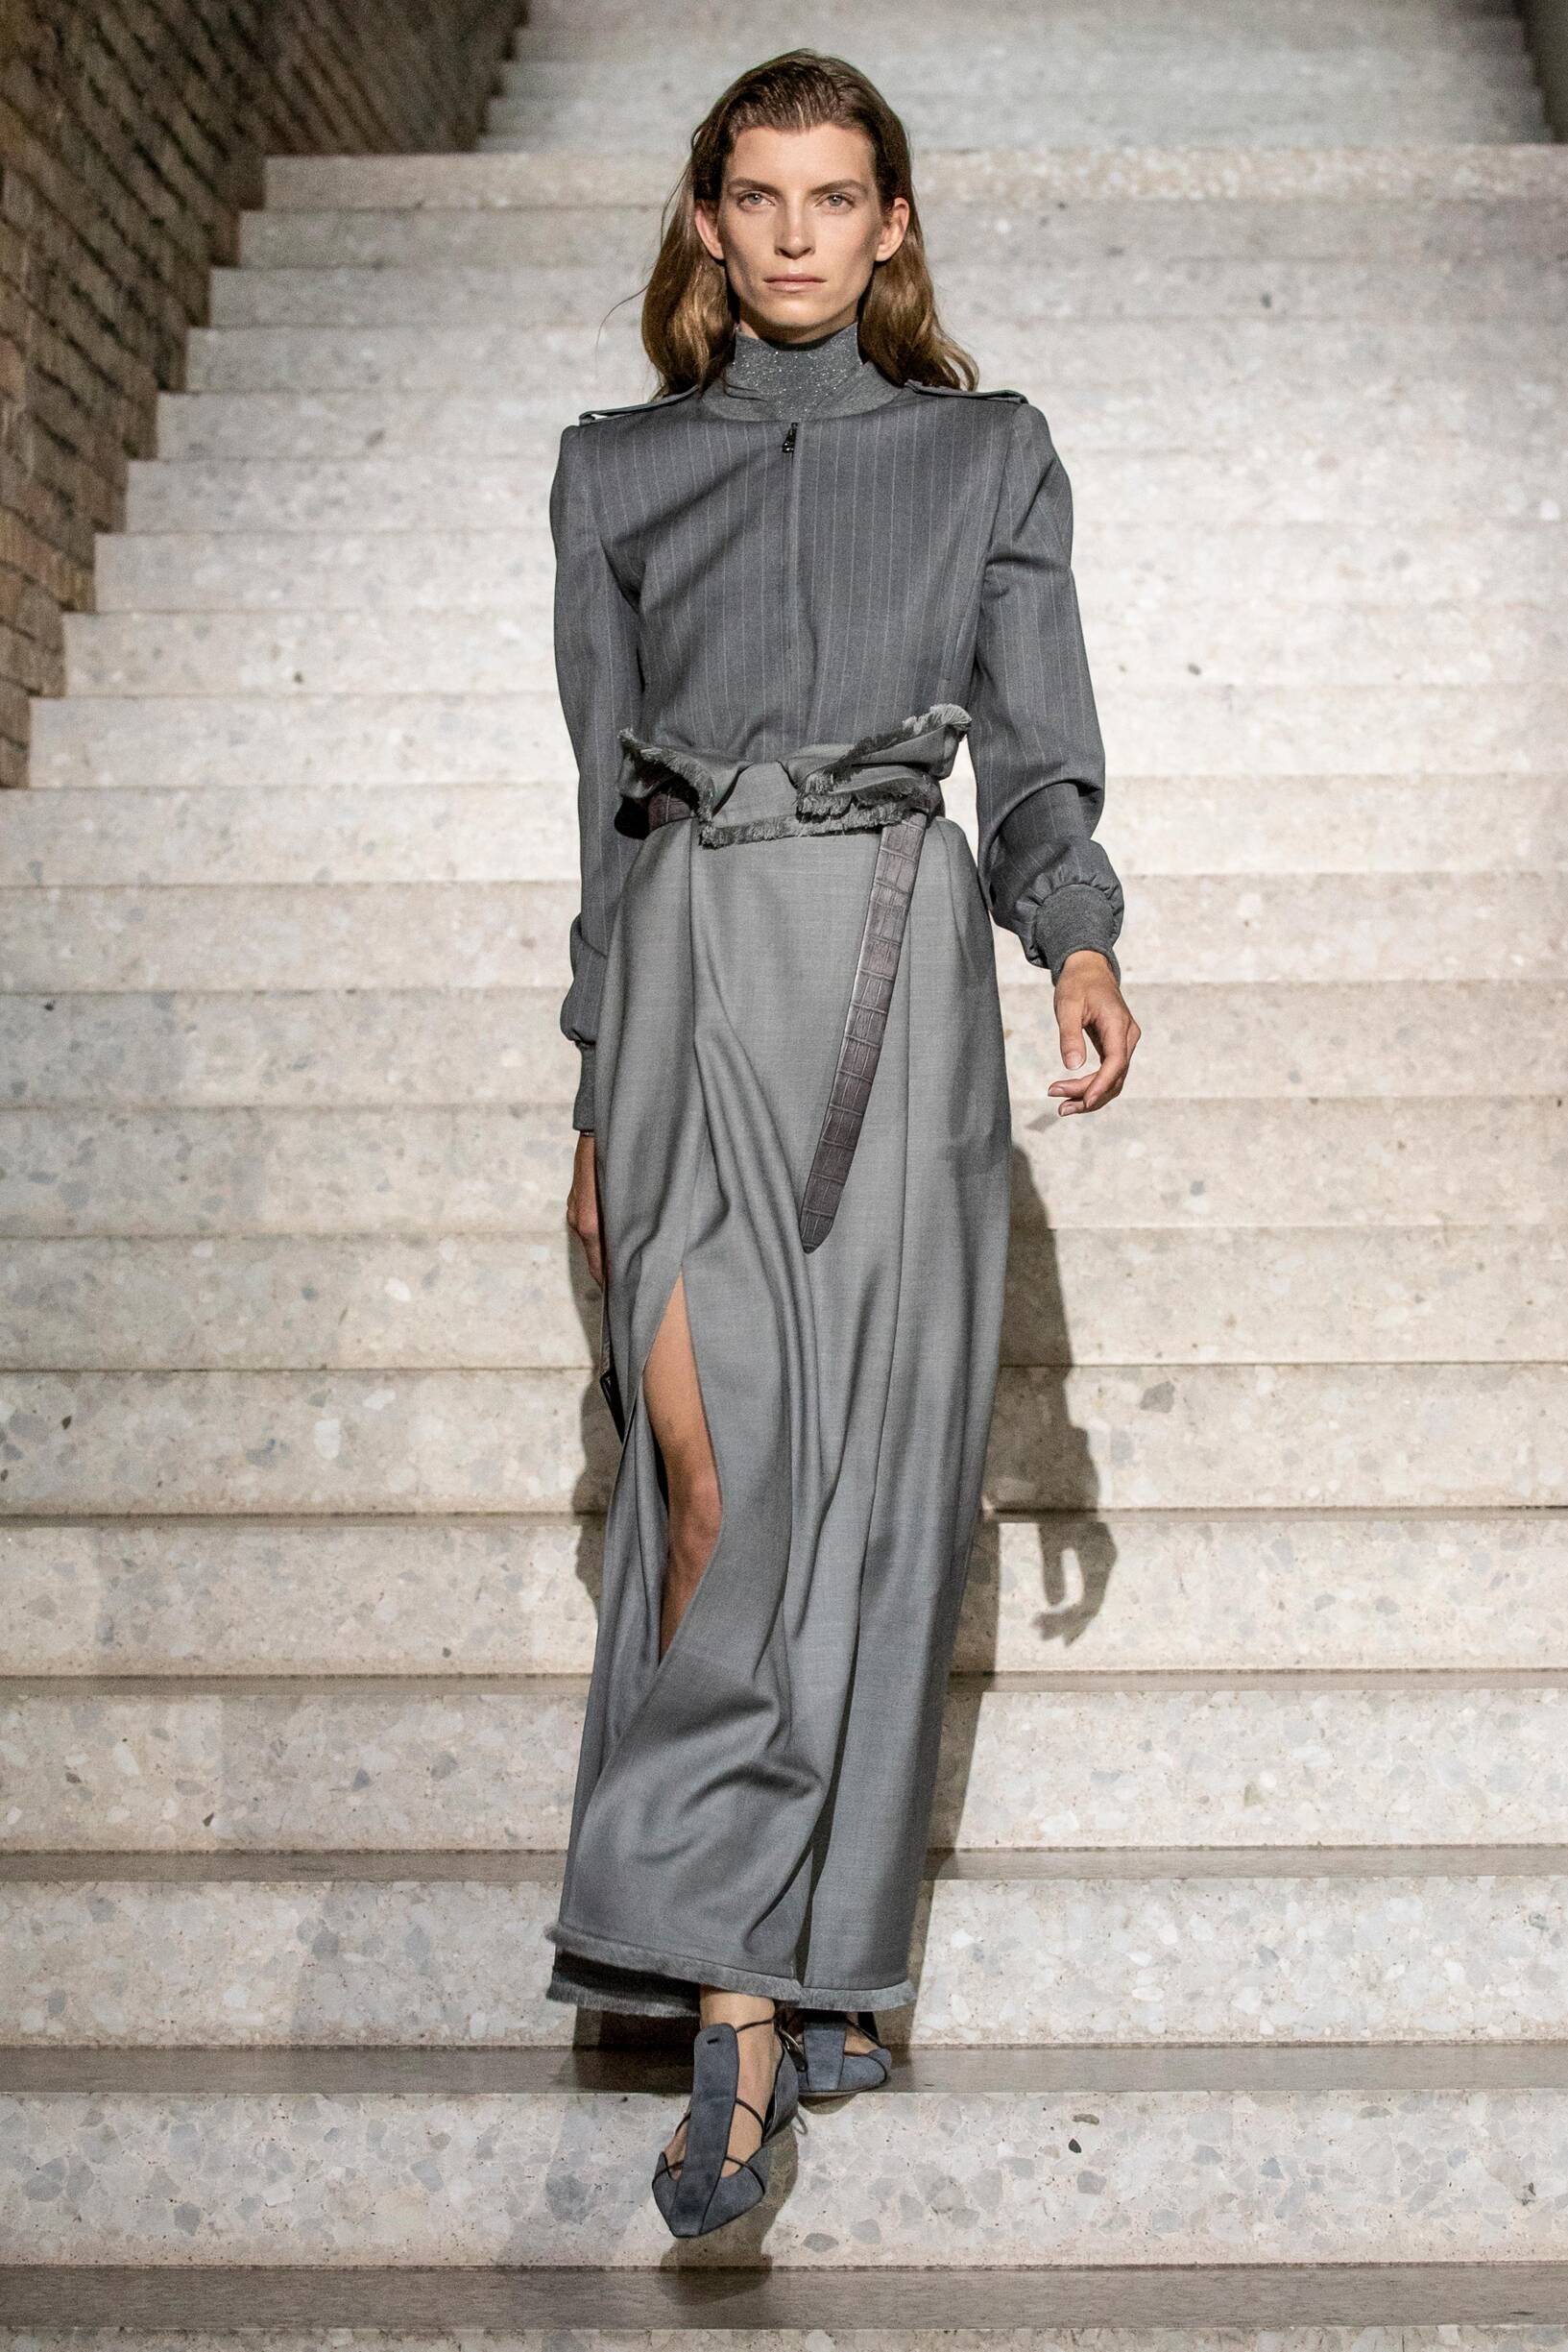 Max Mara Resort 2020 Collection Look 29 Berlin